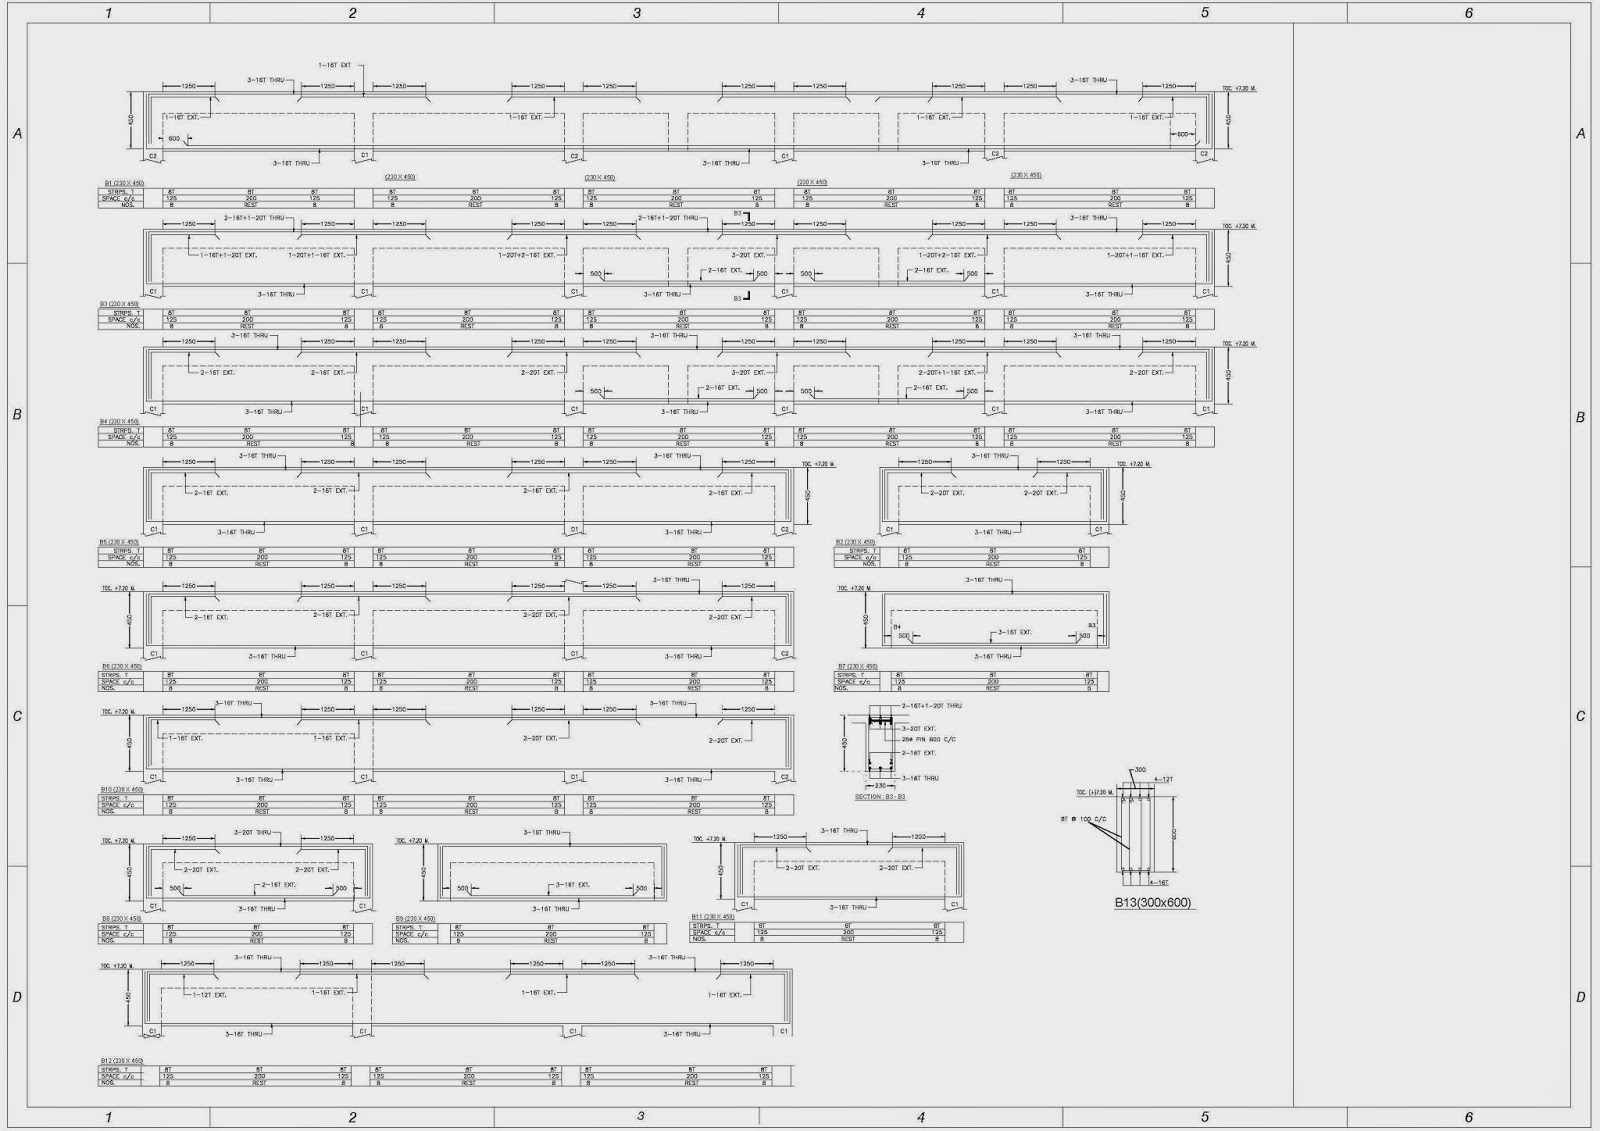 Structural Drawings in AutoCAD